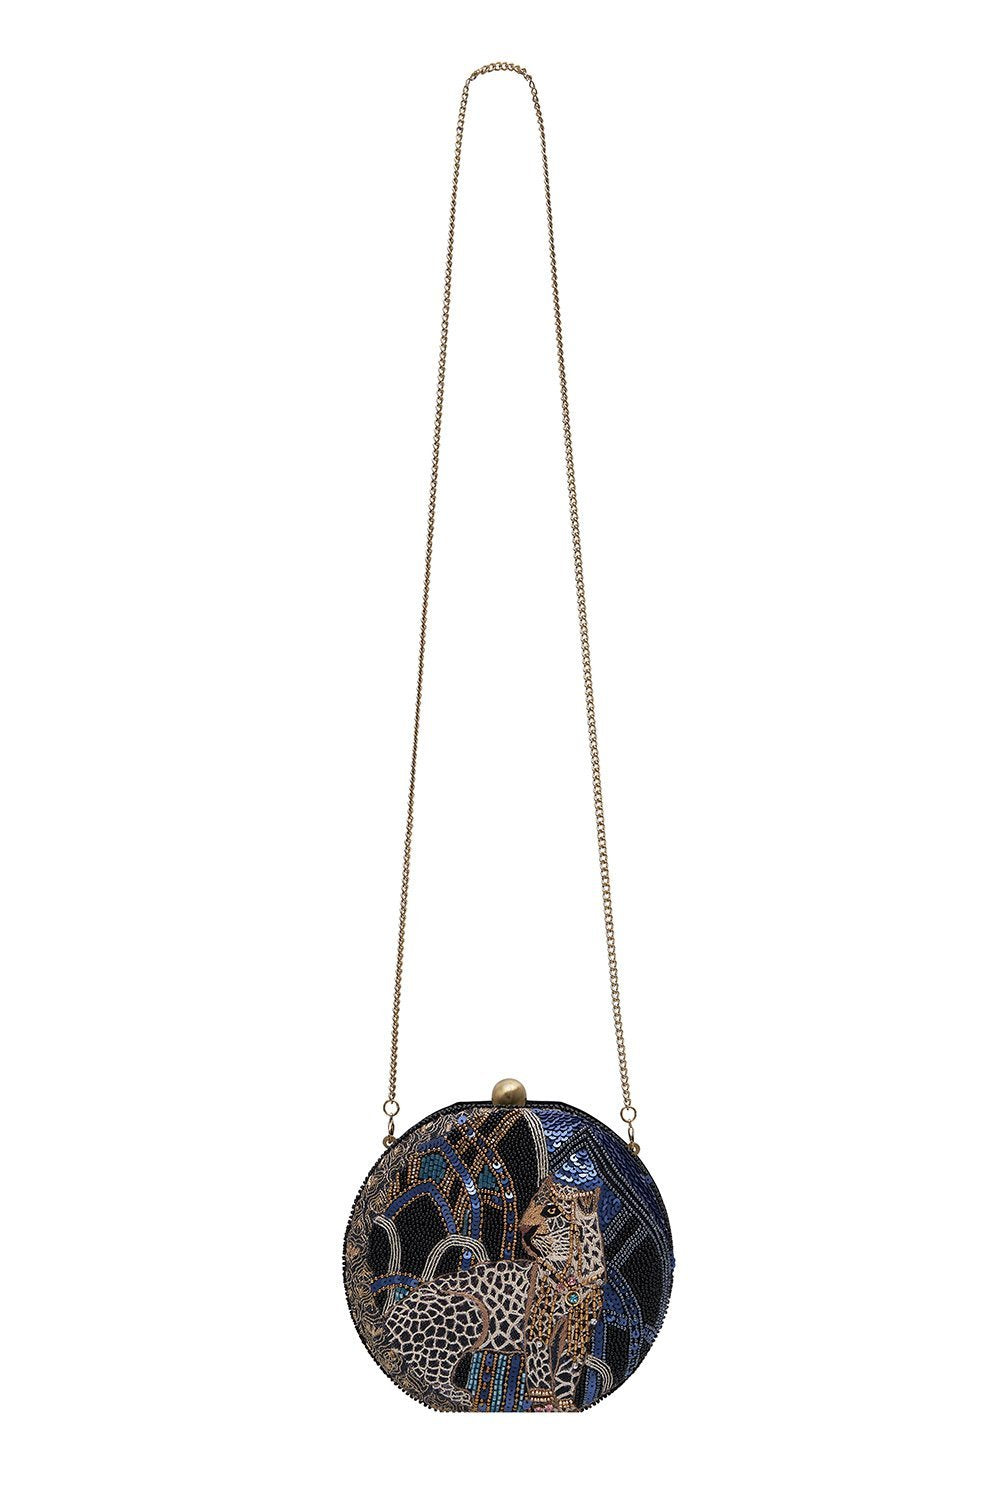 LEOPARD ORB BAG GREAT SCOTT